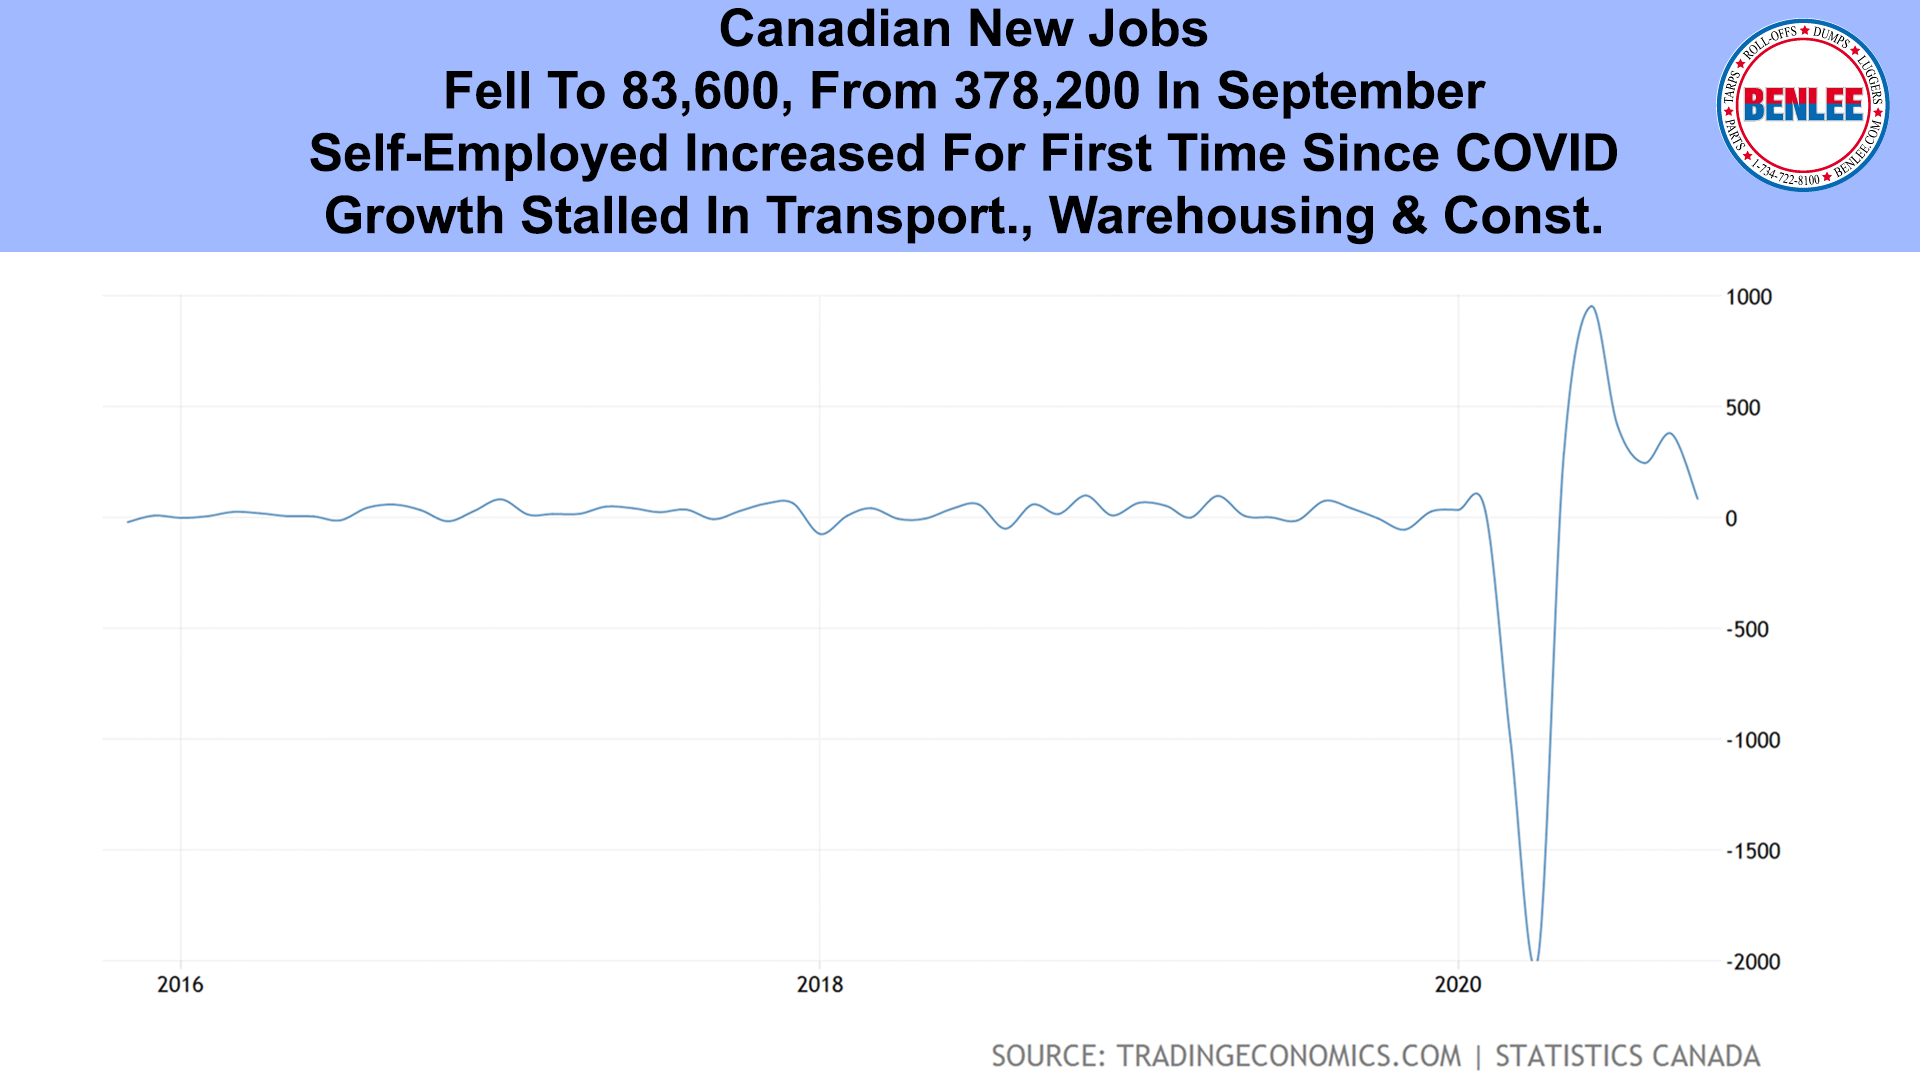 Canadian New Jobs